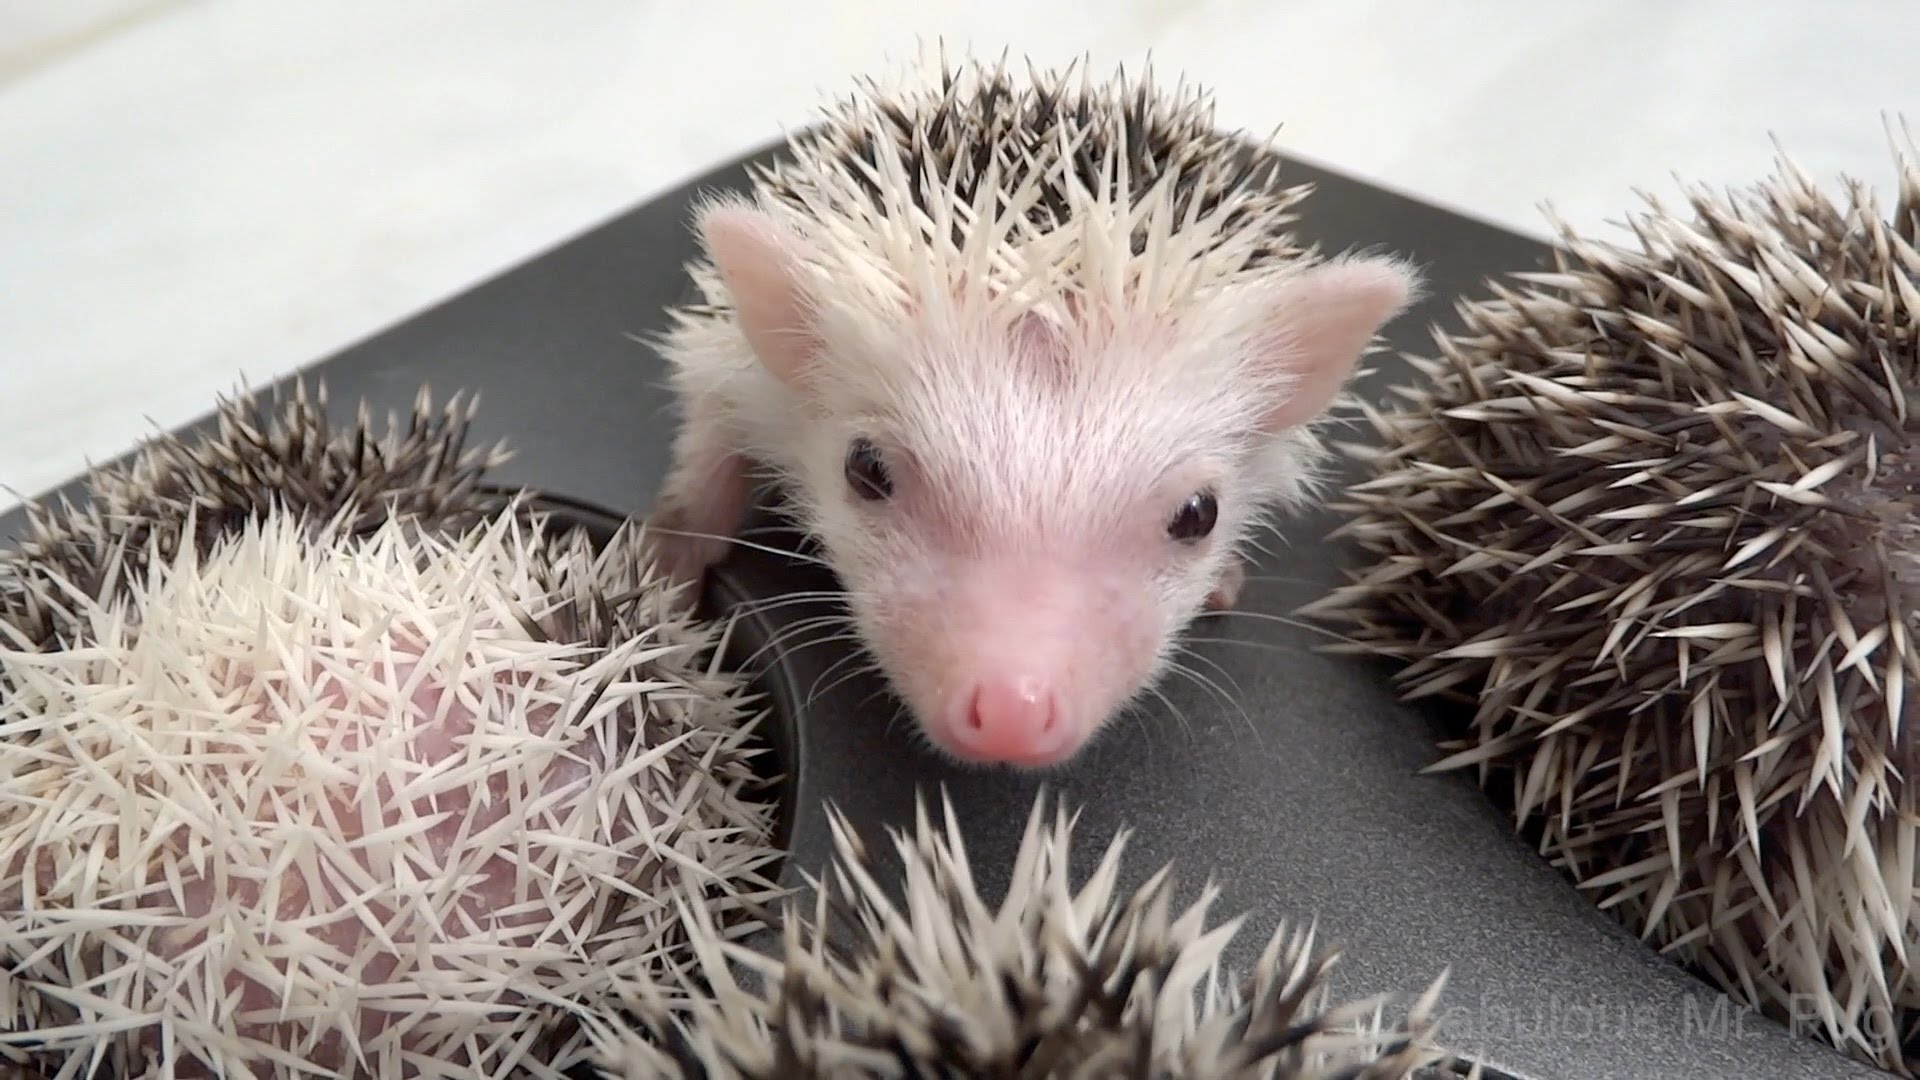 Teeny Tiny Hedgehog Siblings Deliciously Curl Up Perfectly Inside Their Human's Muffin Baking Tin